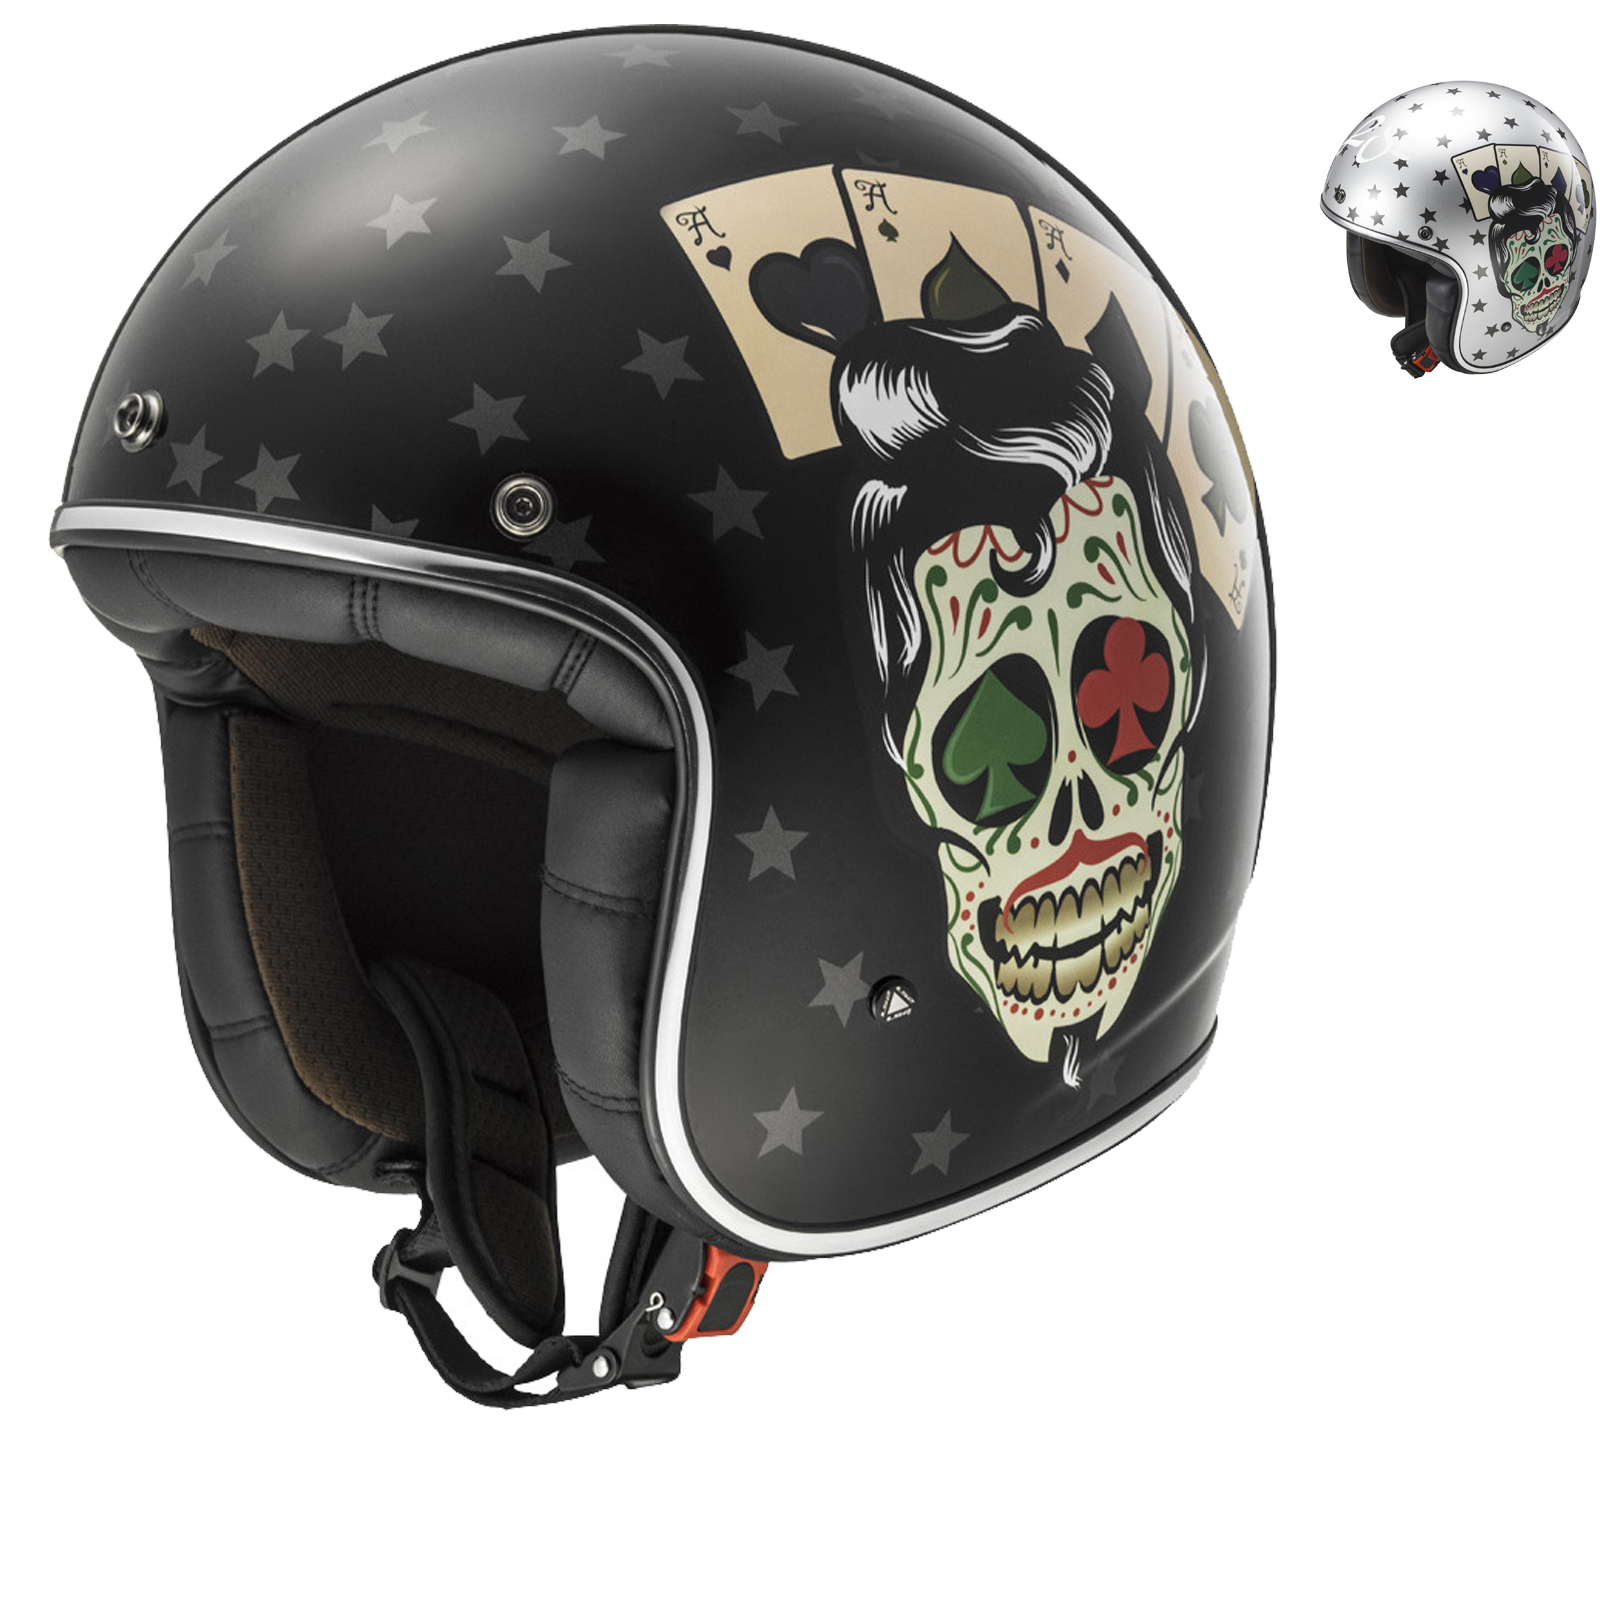 Ls2 bobber tattoo open face motorcycle helmet for Best helmet for motor scooter